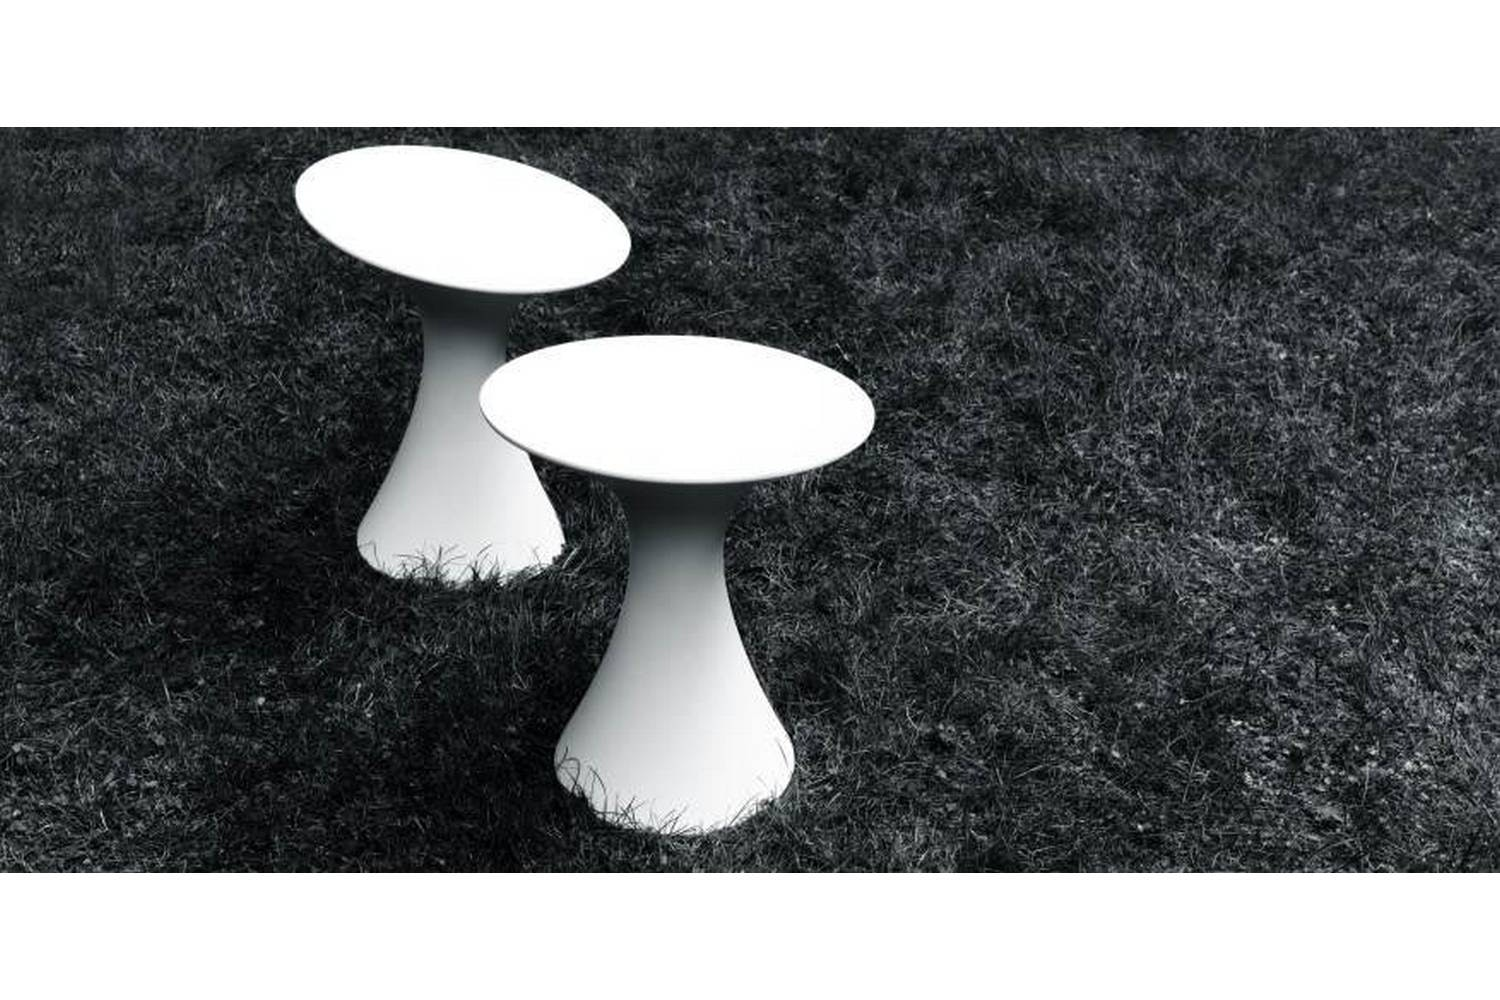 Kale Table/Stool by Mario Ferrarini for Living Divani